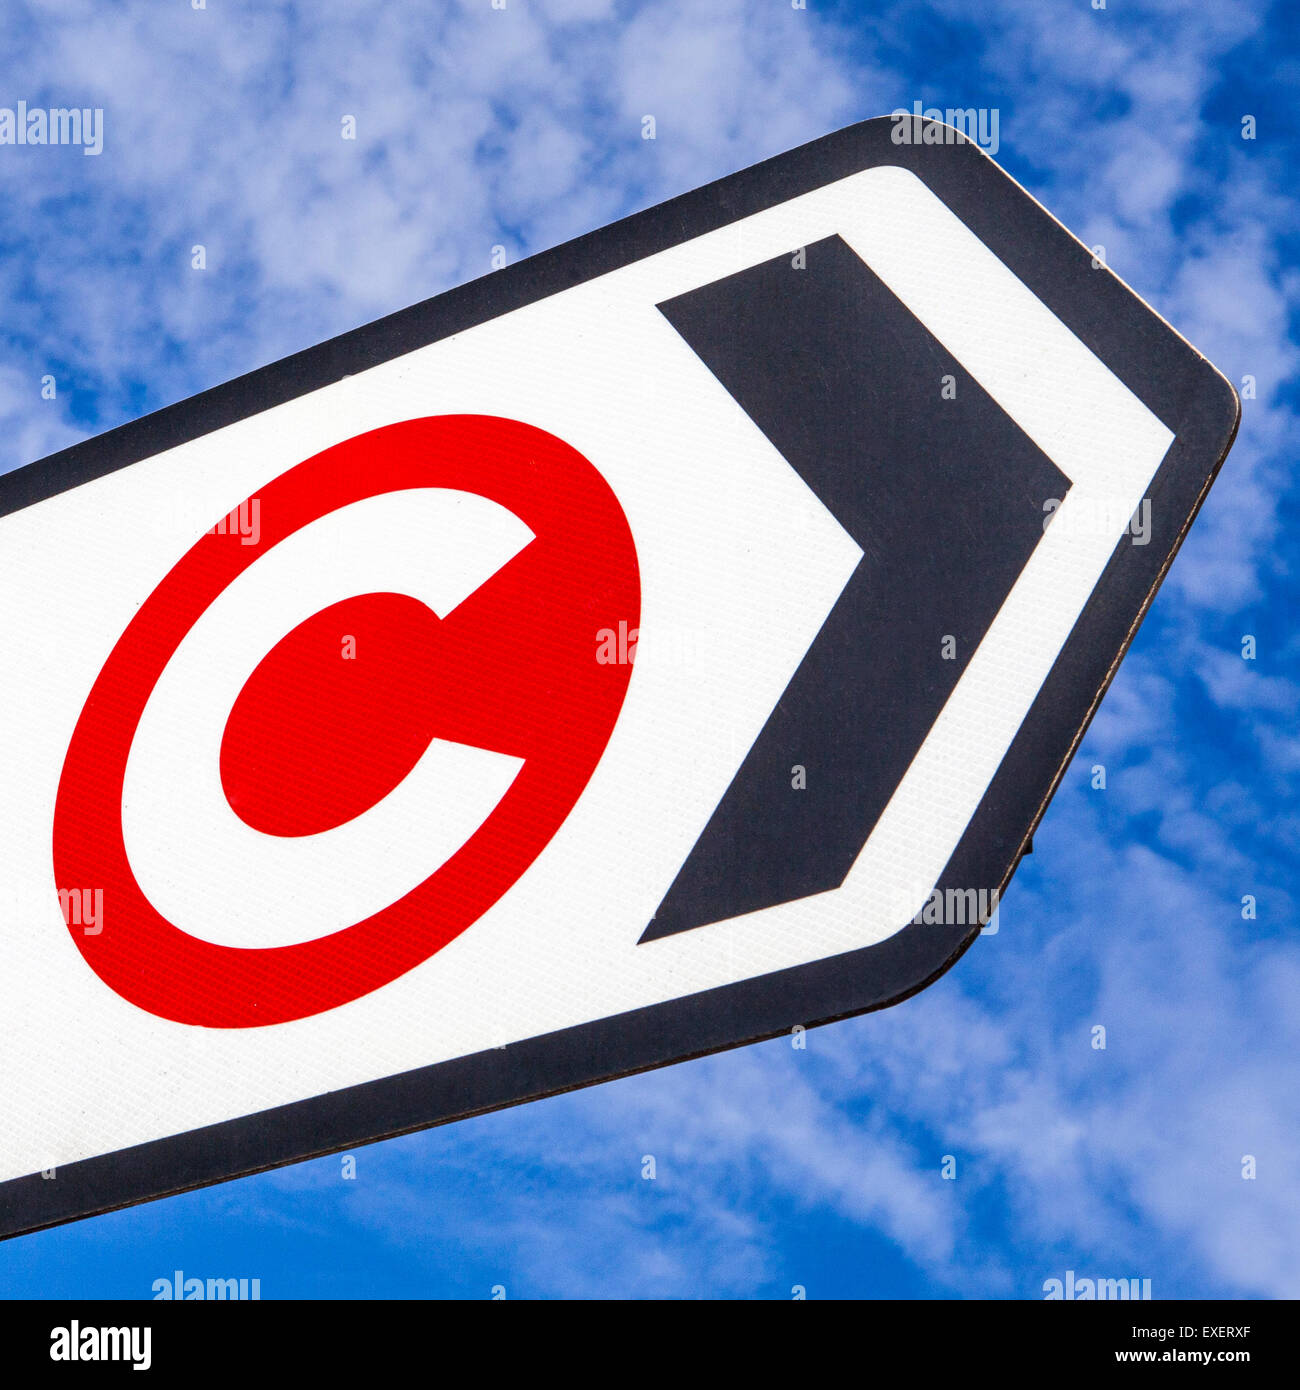 LONDON, UK - JULY 10TH 2015: The London Congestion Charge symbol on a sign in central London, on 10th July 2015. - Stock Image